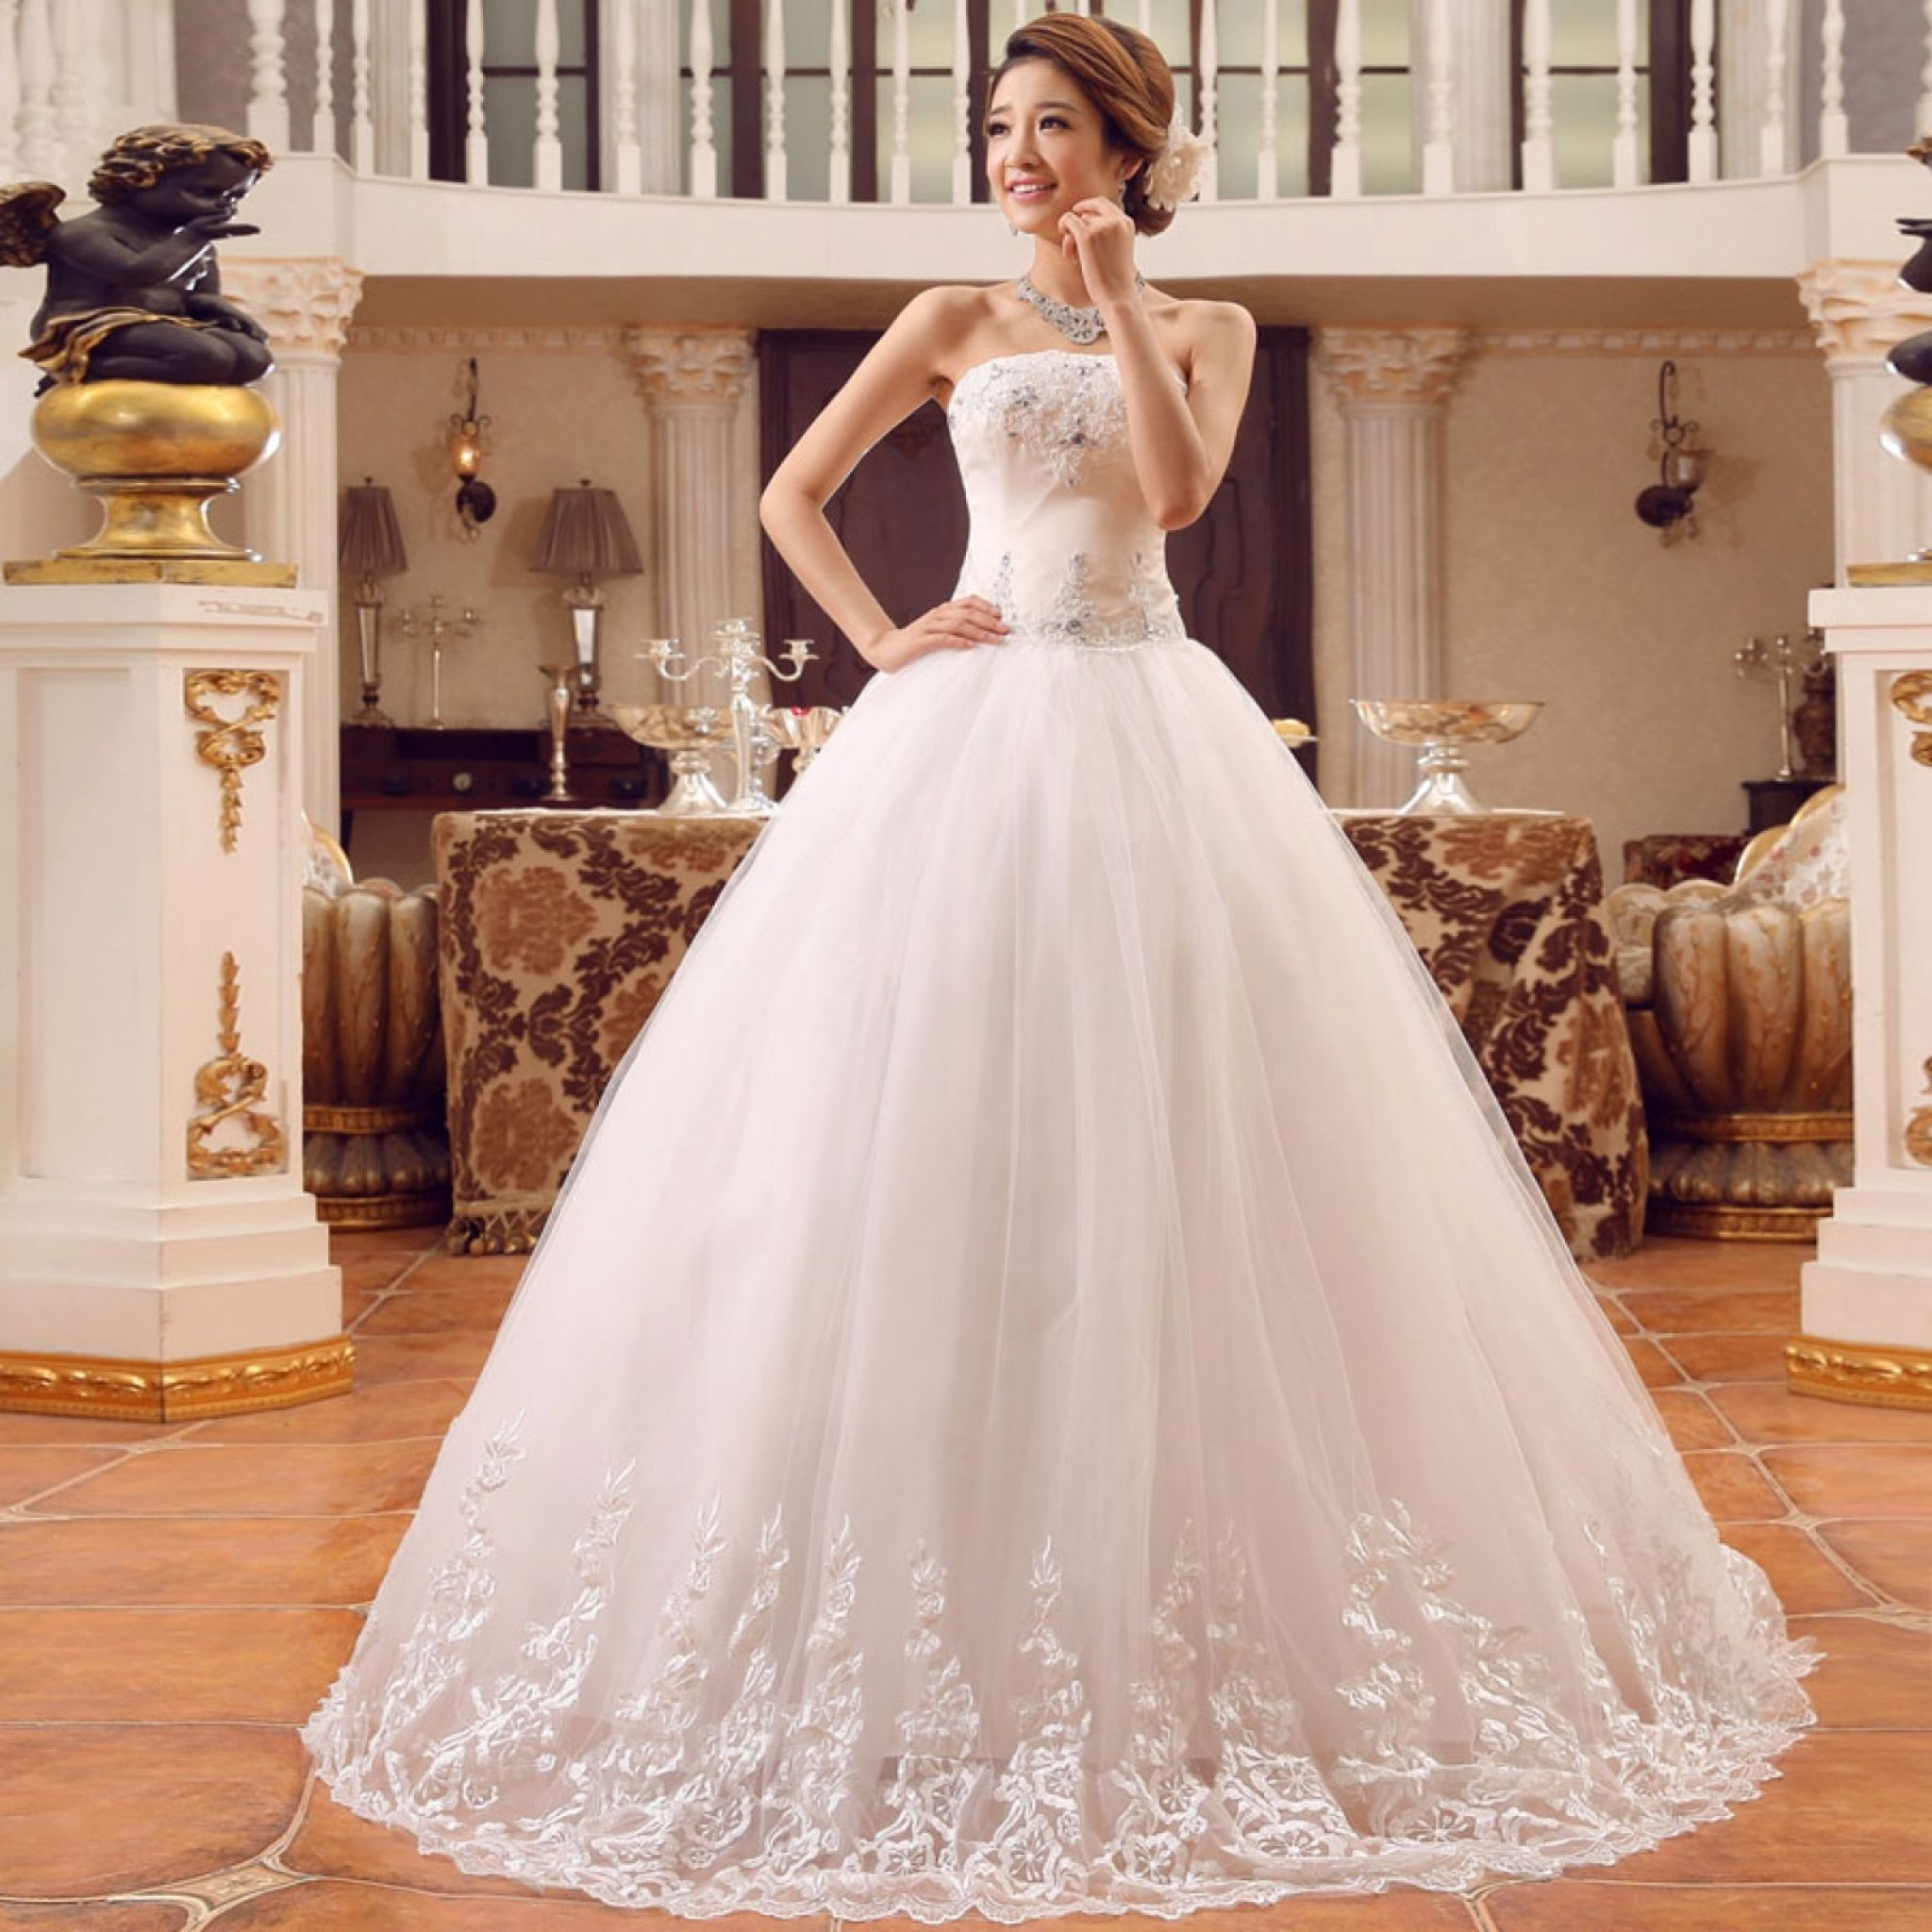 wedding dress rental nyc  best wedding dress for pear shaped Check